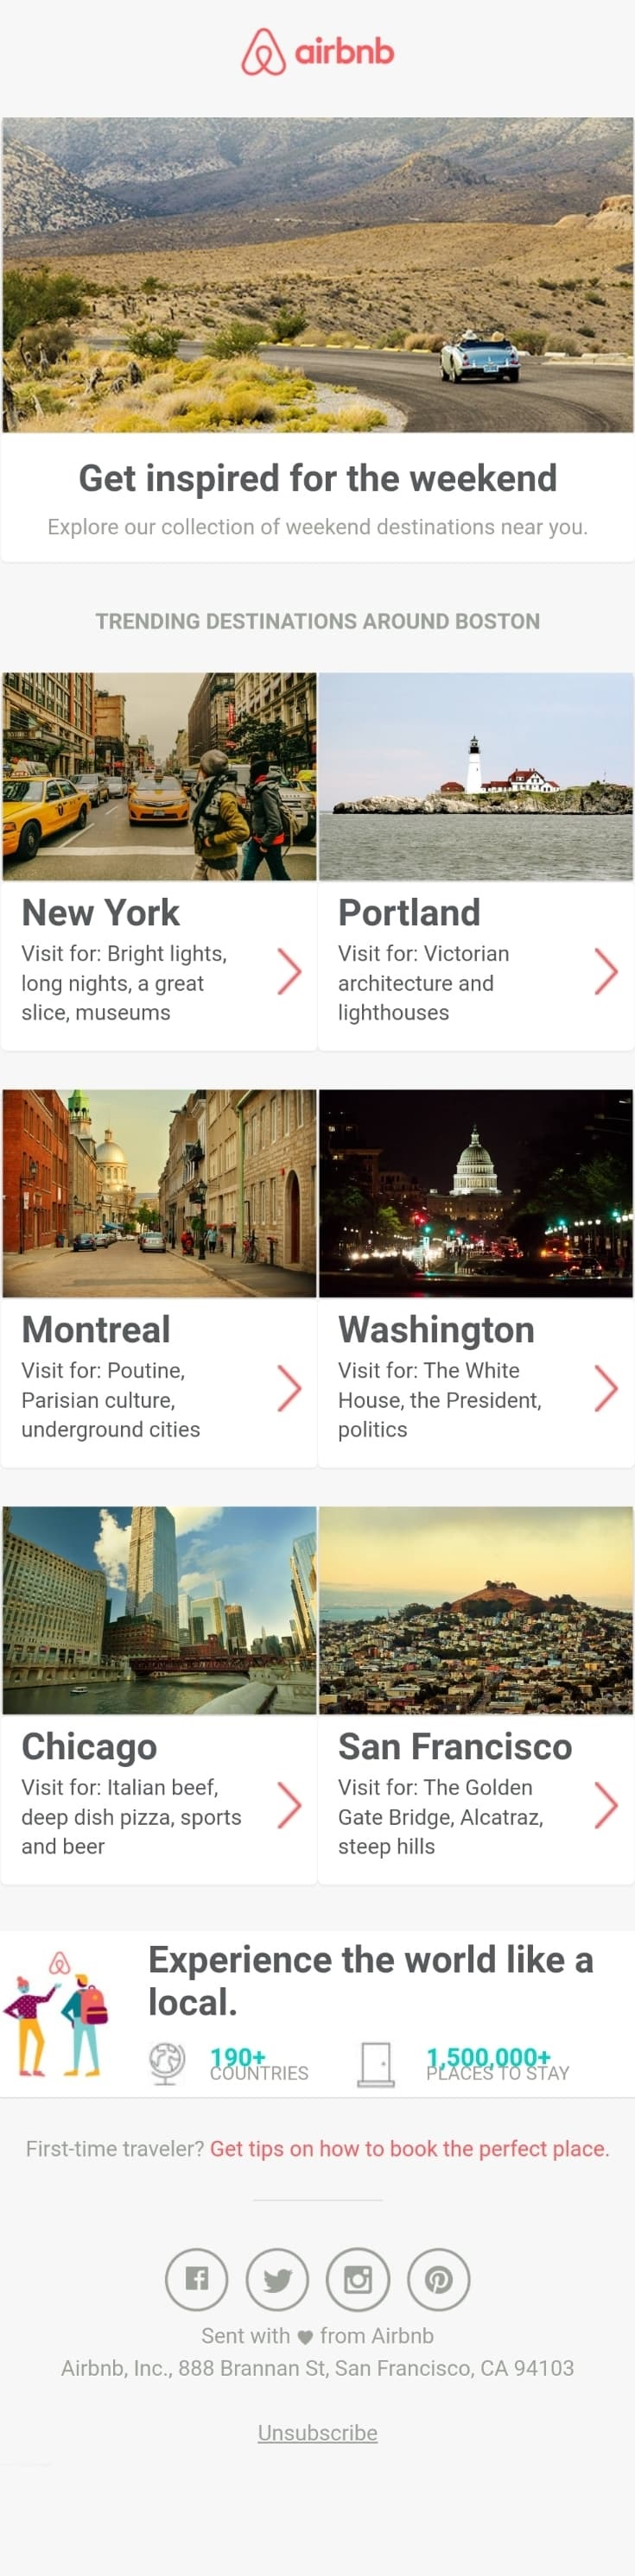 AirBnB knows where there buyers are in the sales cycle and introduces them to their next steps.